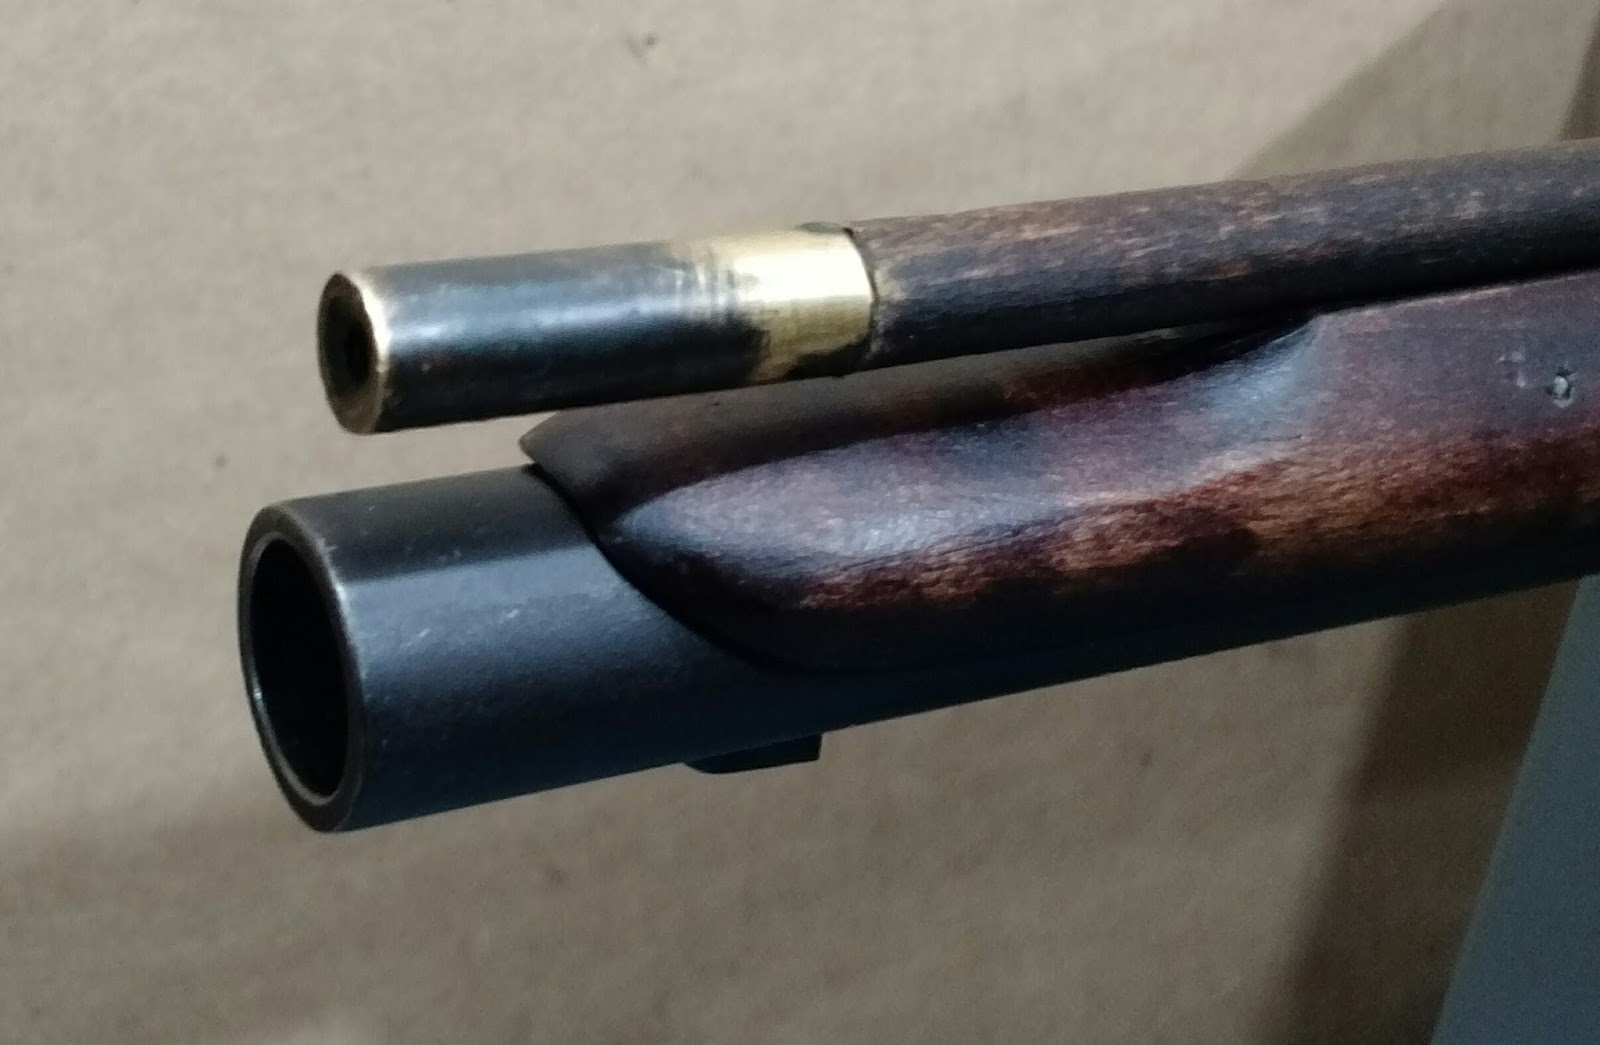 black singles in north powder Single shot blackpowder pistol 44 caliber  ohio residents will be able to make arrangements to pick up firearms from north college hill gun store located.